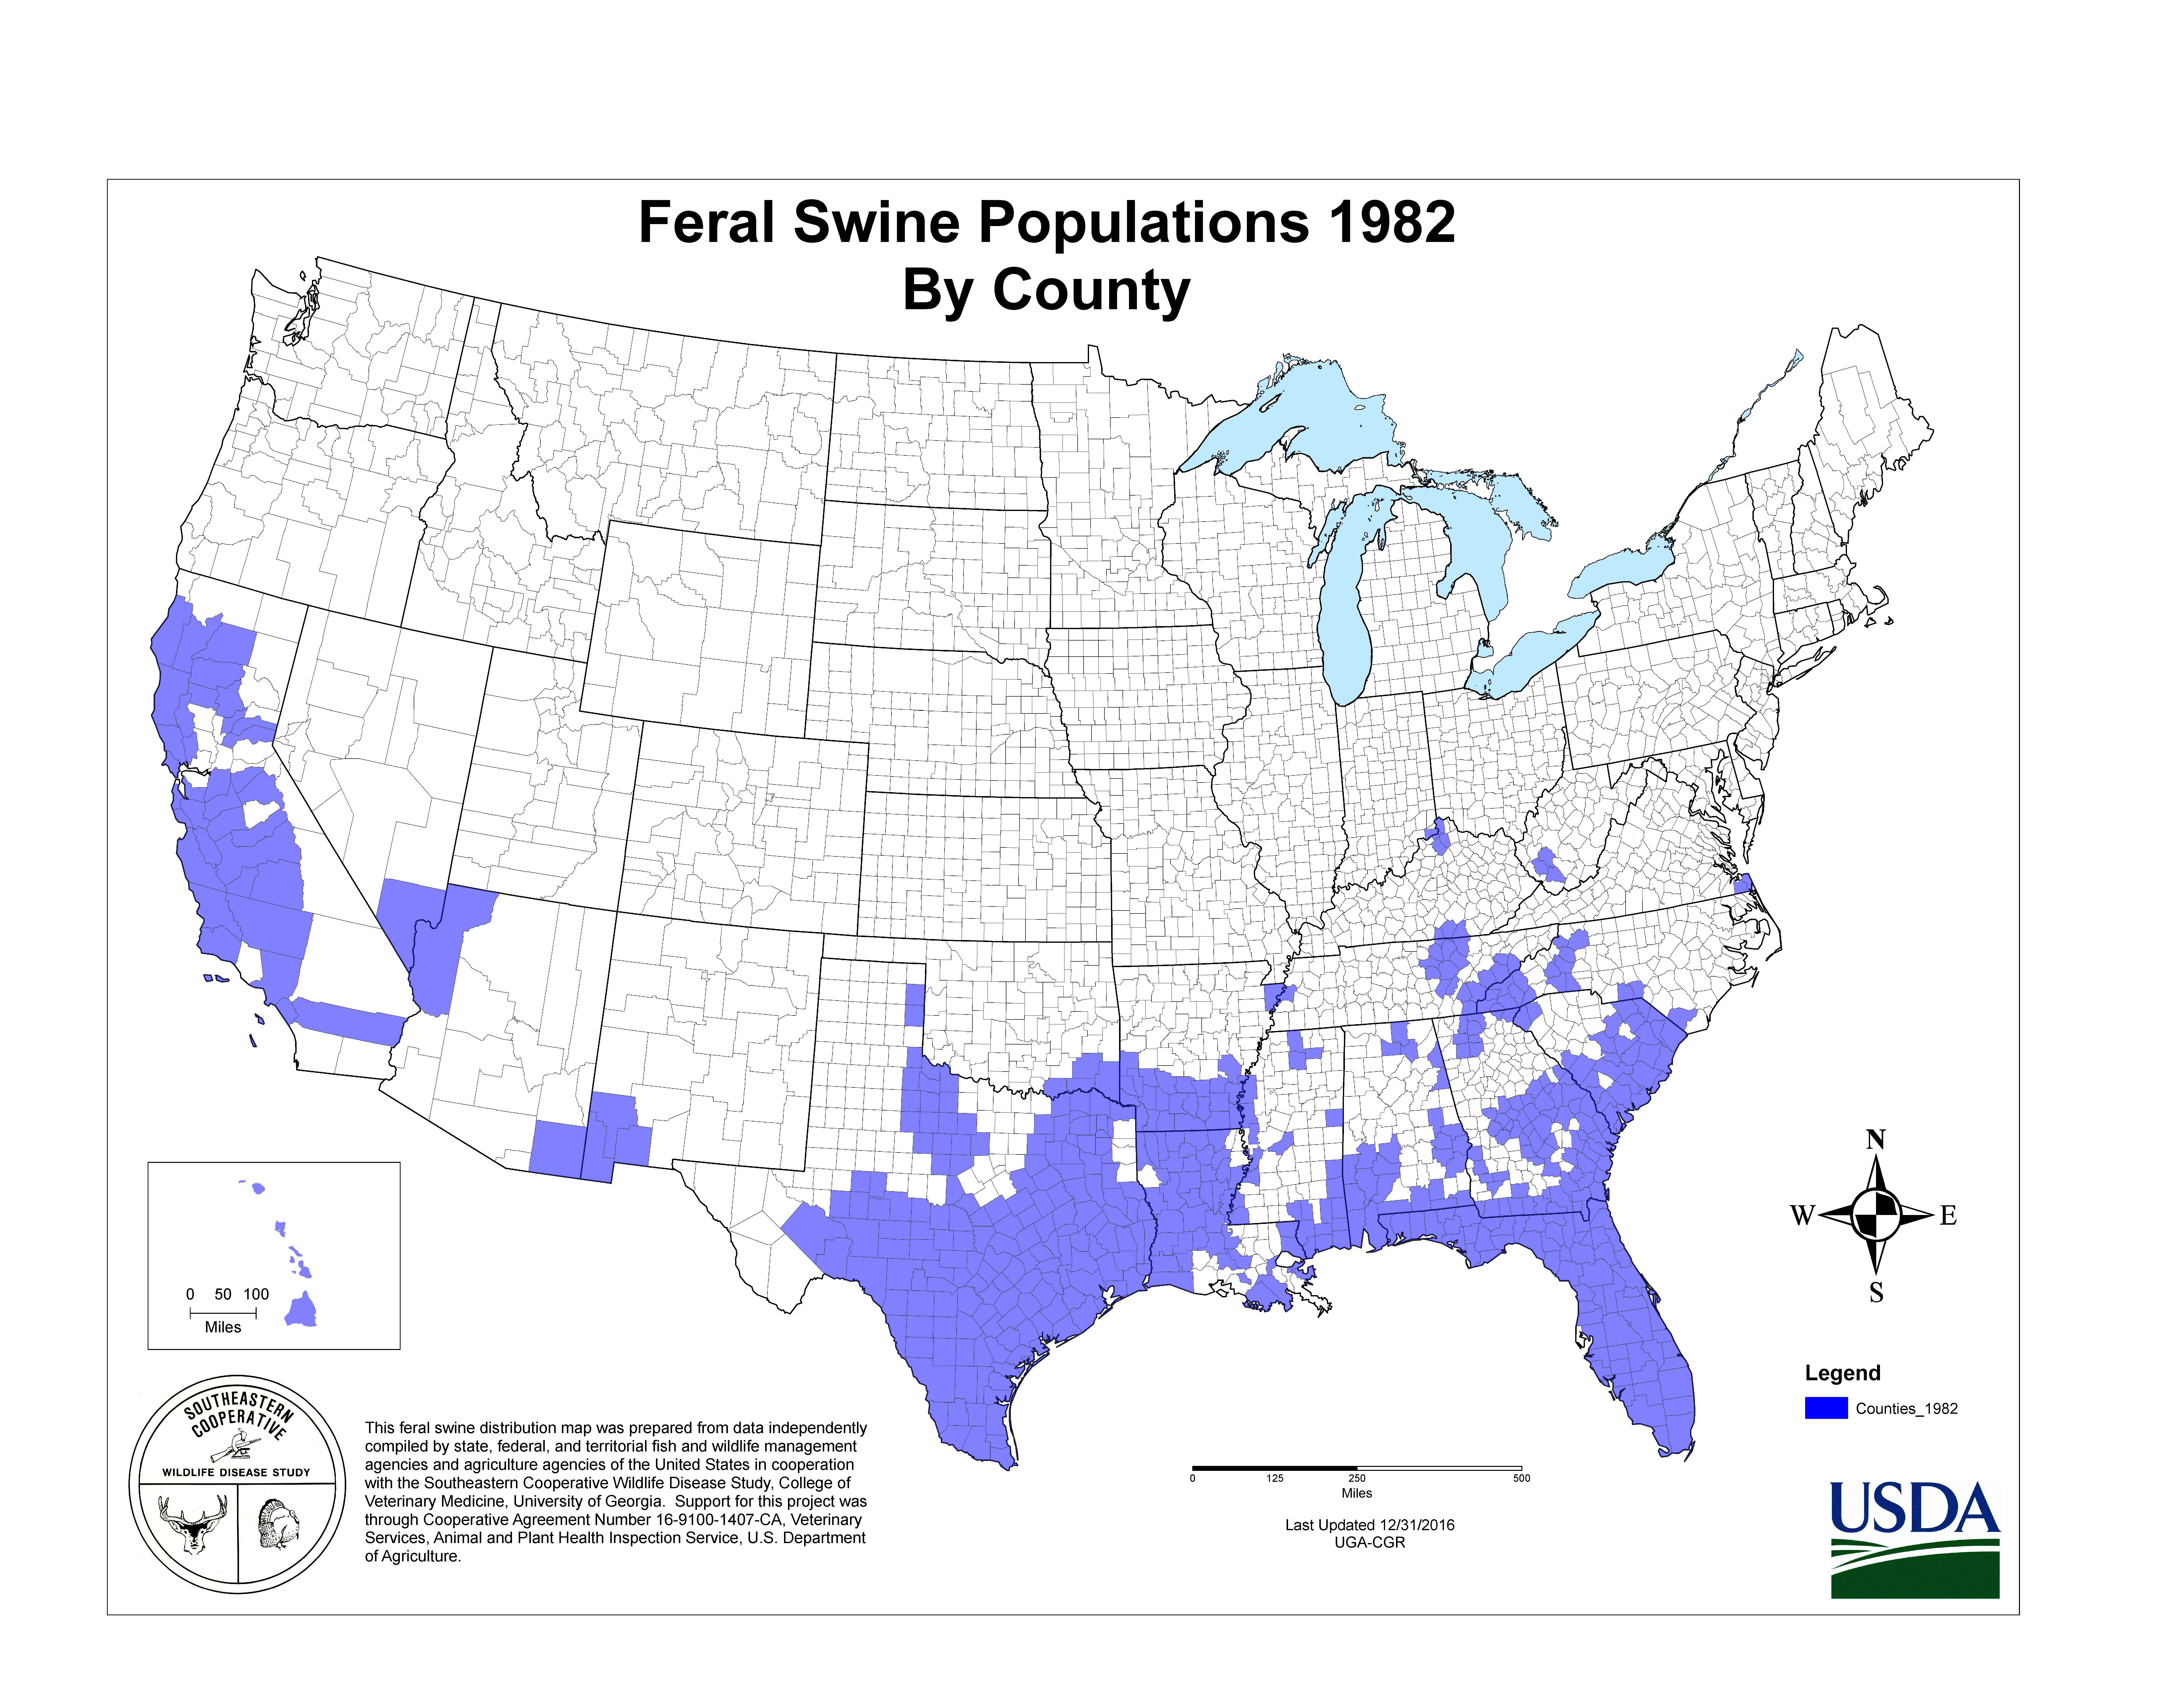 Usda Aphis | History Of Feral Swine In The Americas - Florida Wild Hog Population Map